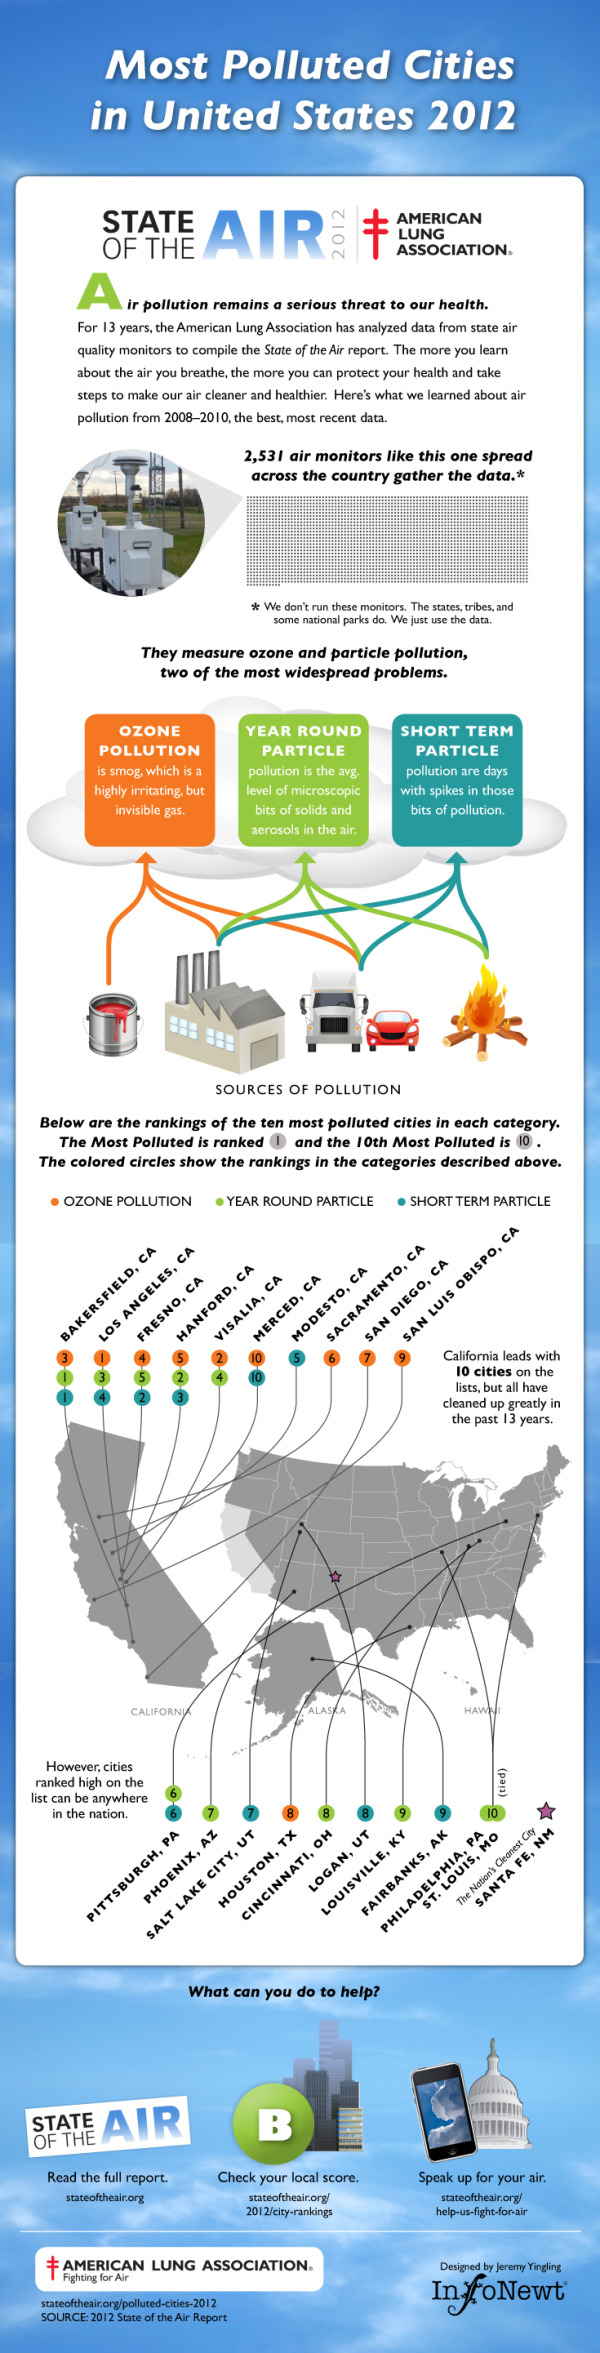 Client Infographic: Most Polluted Cities 2012 infographic